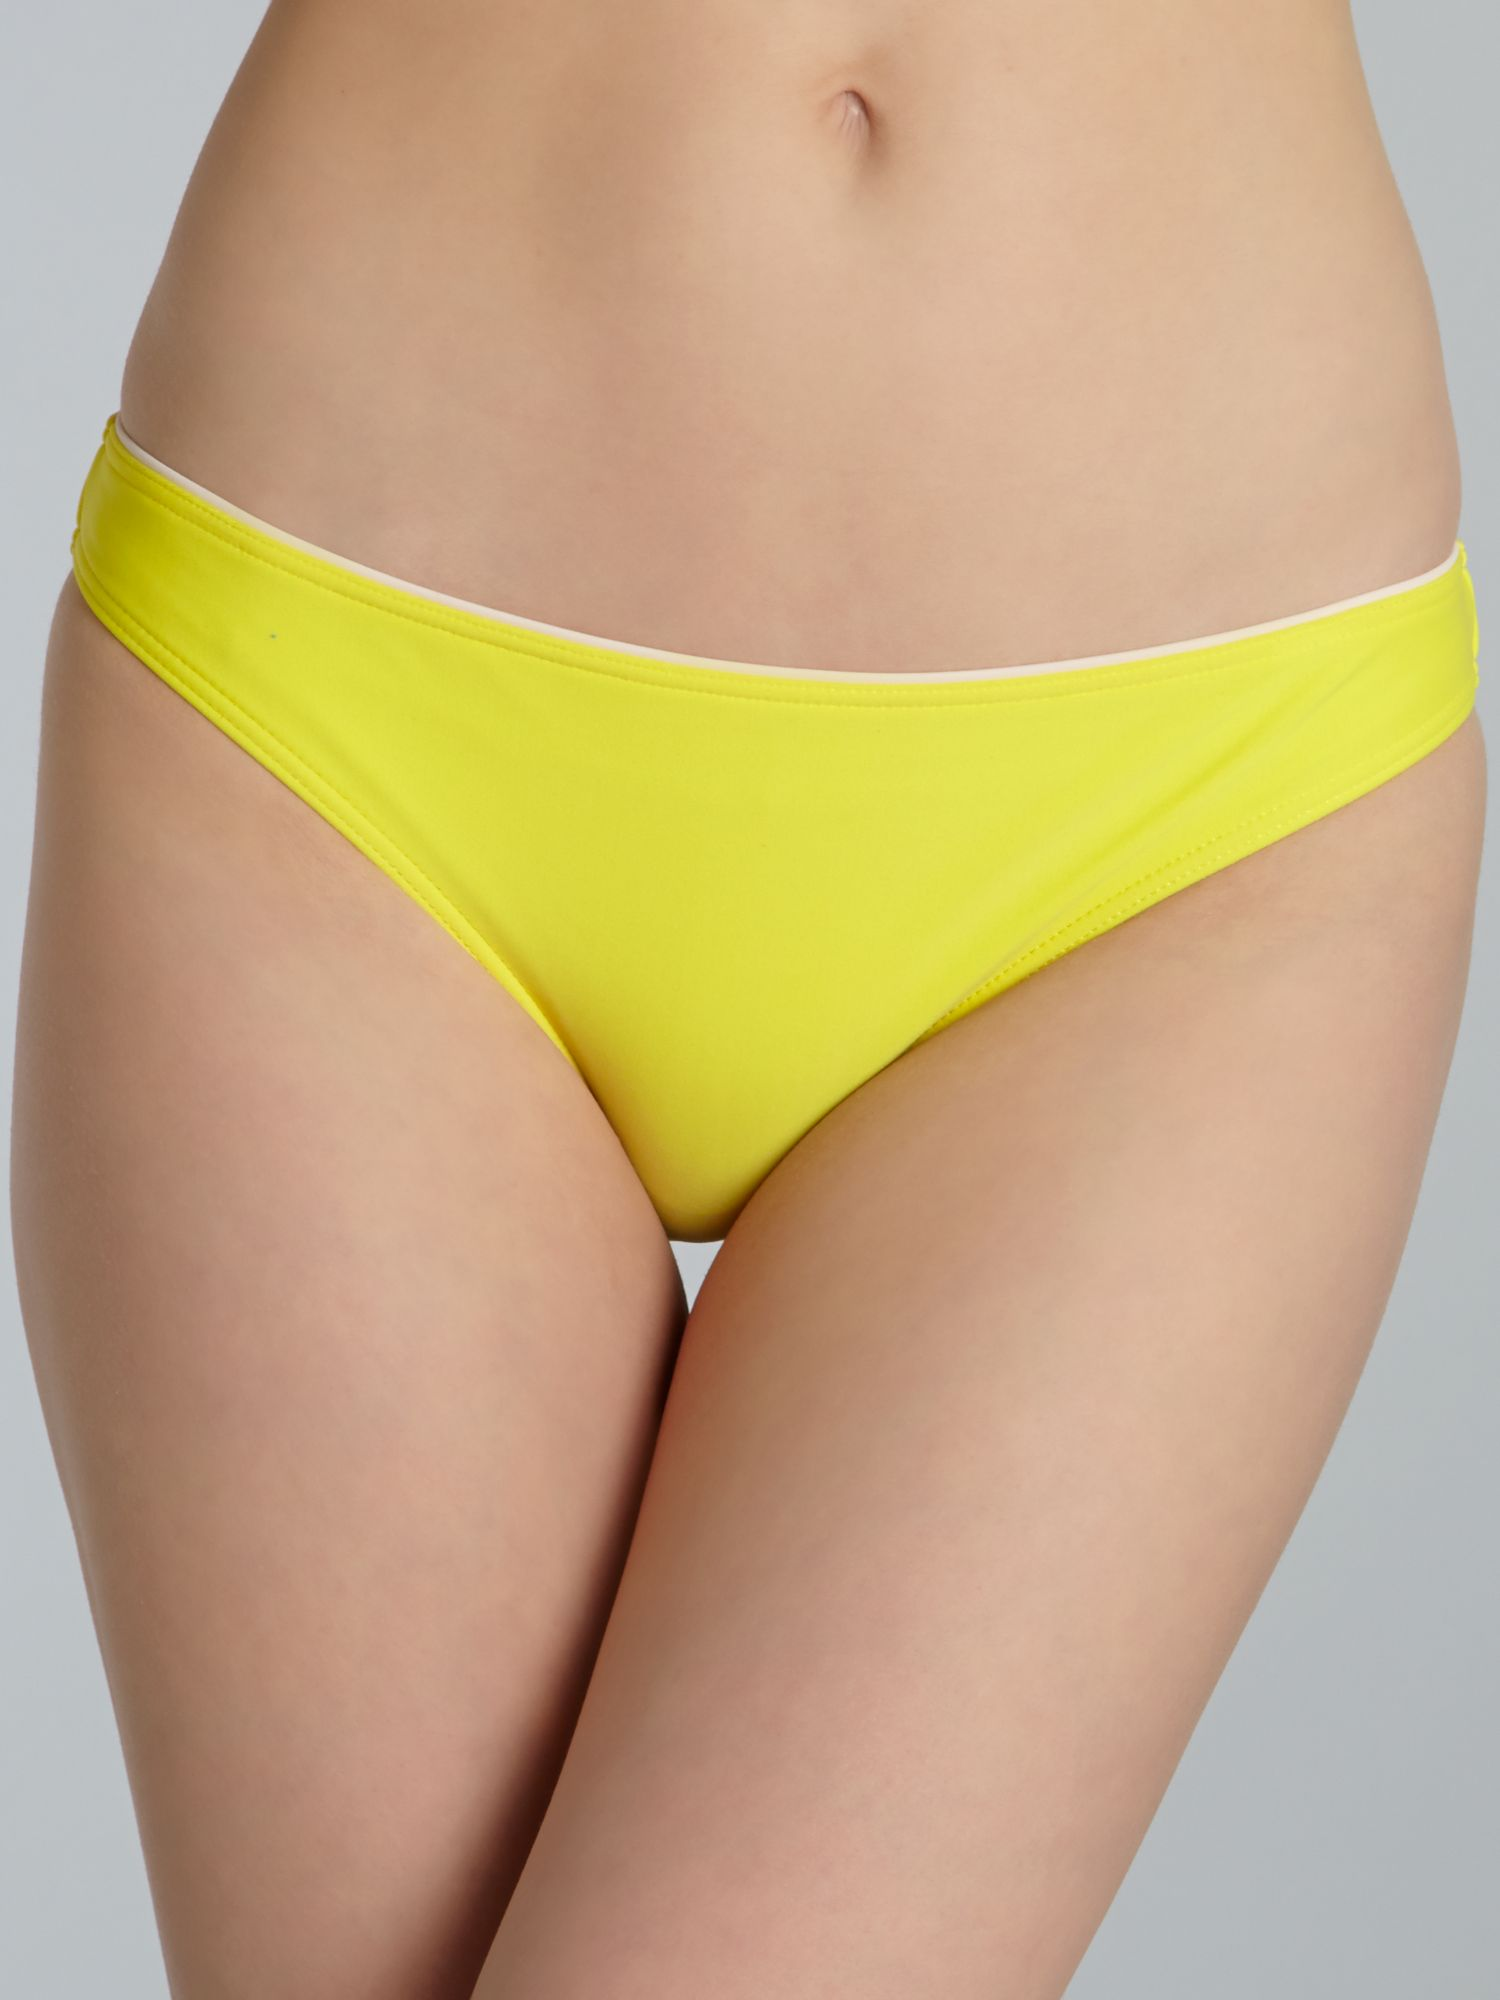 Sunshine yellow tie side brief